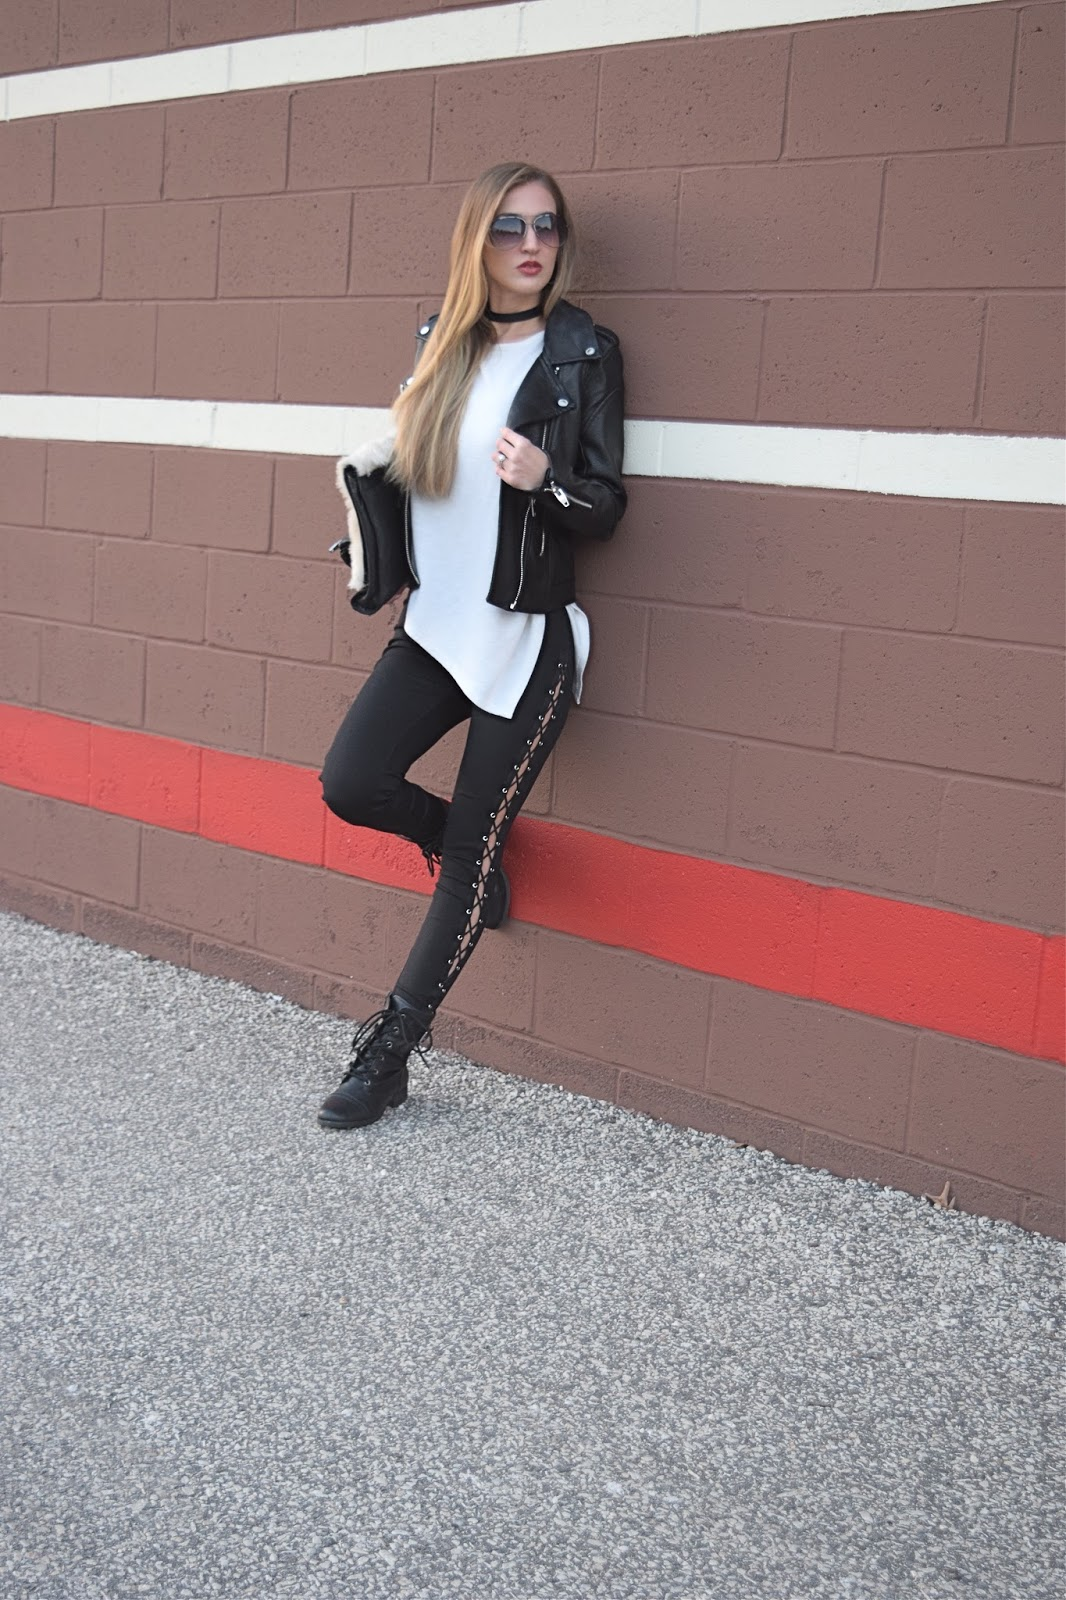 Wearing Blank NYC easy rider faux leather jacket, Express lace up leggings, little liffner fur clutch, leather jacket look with leggings